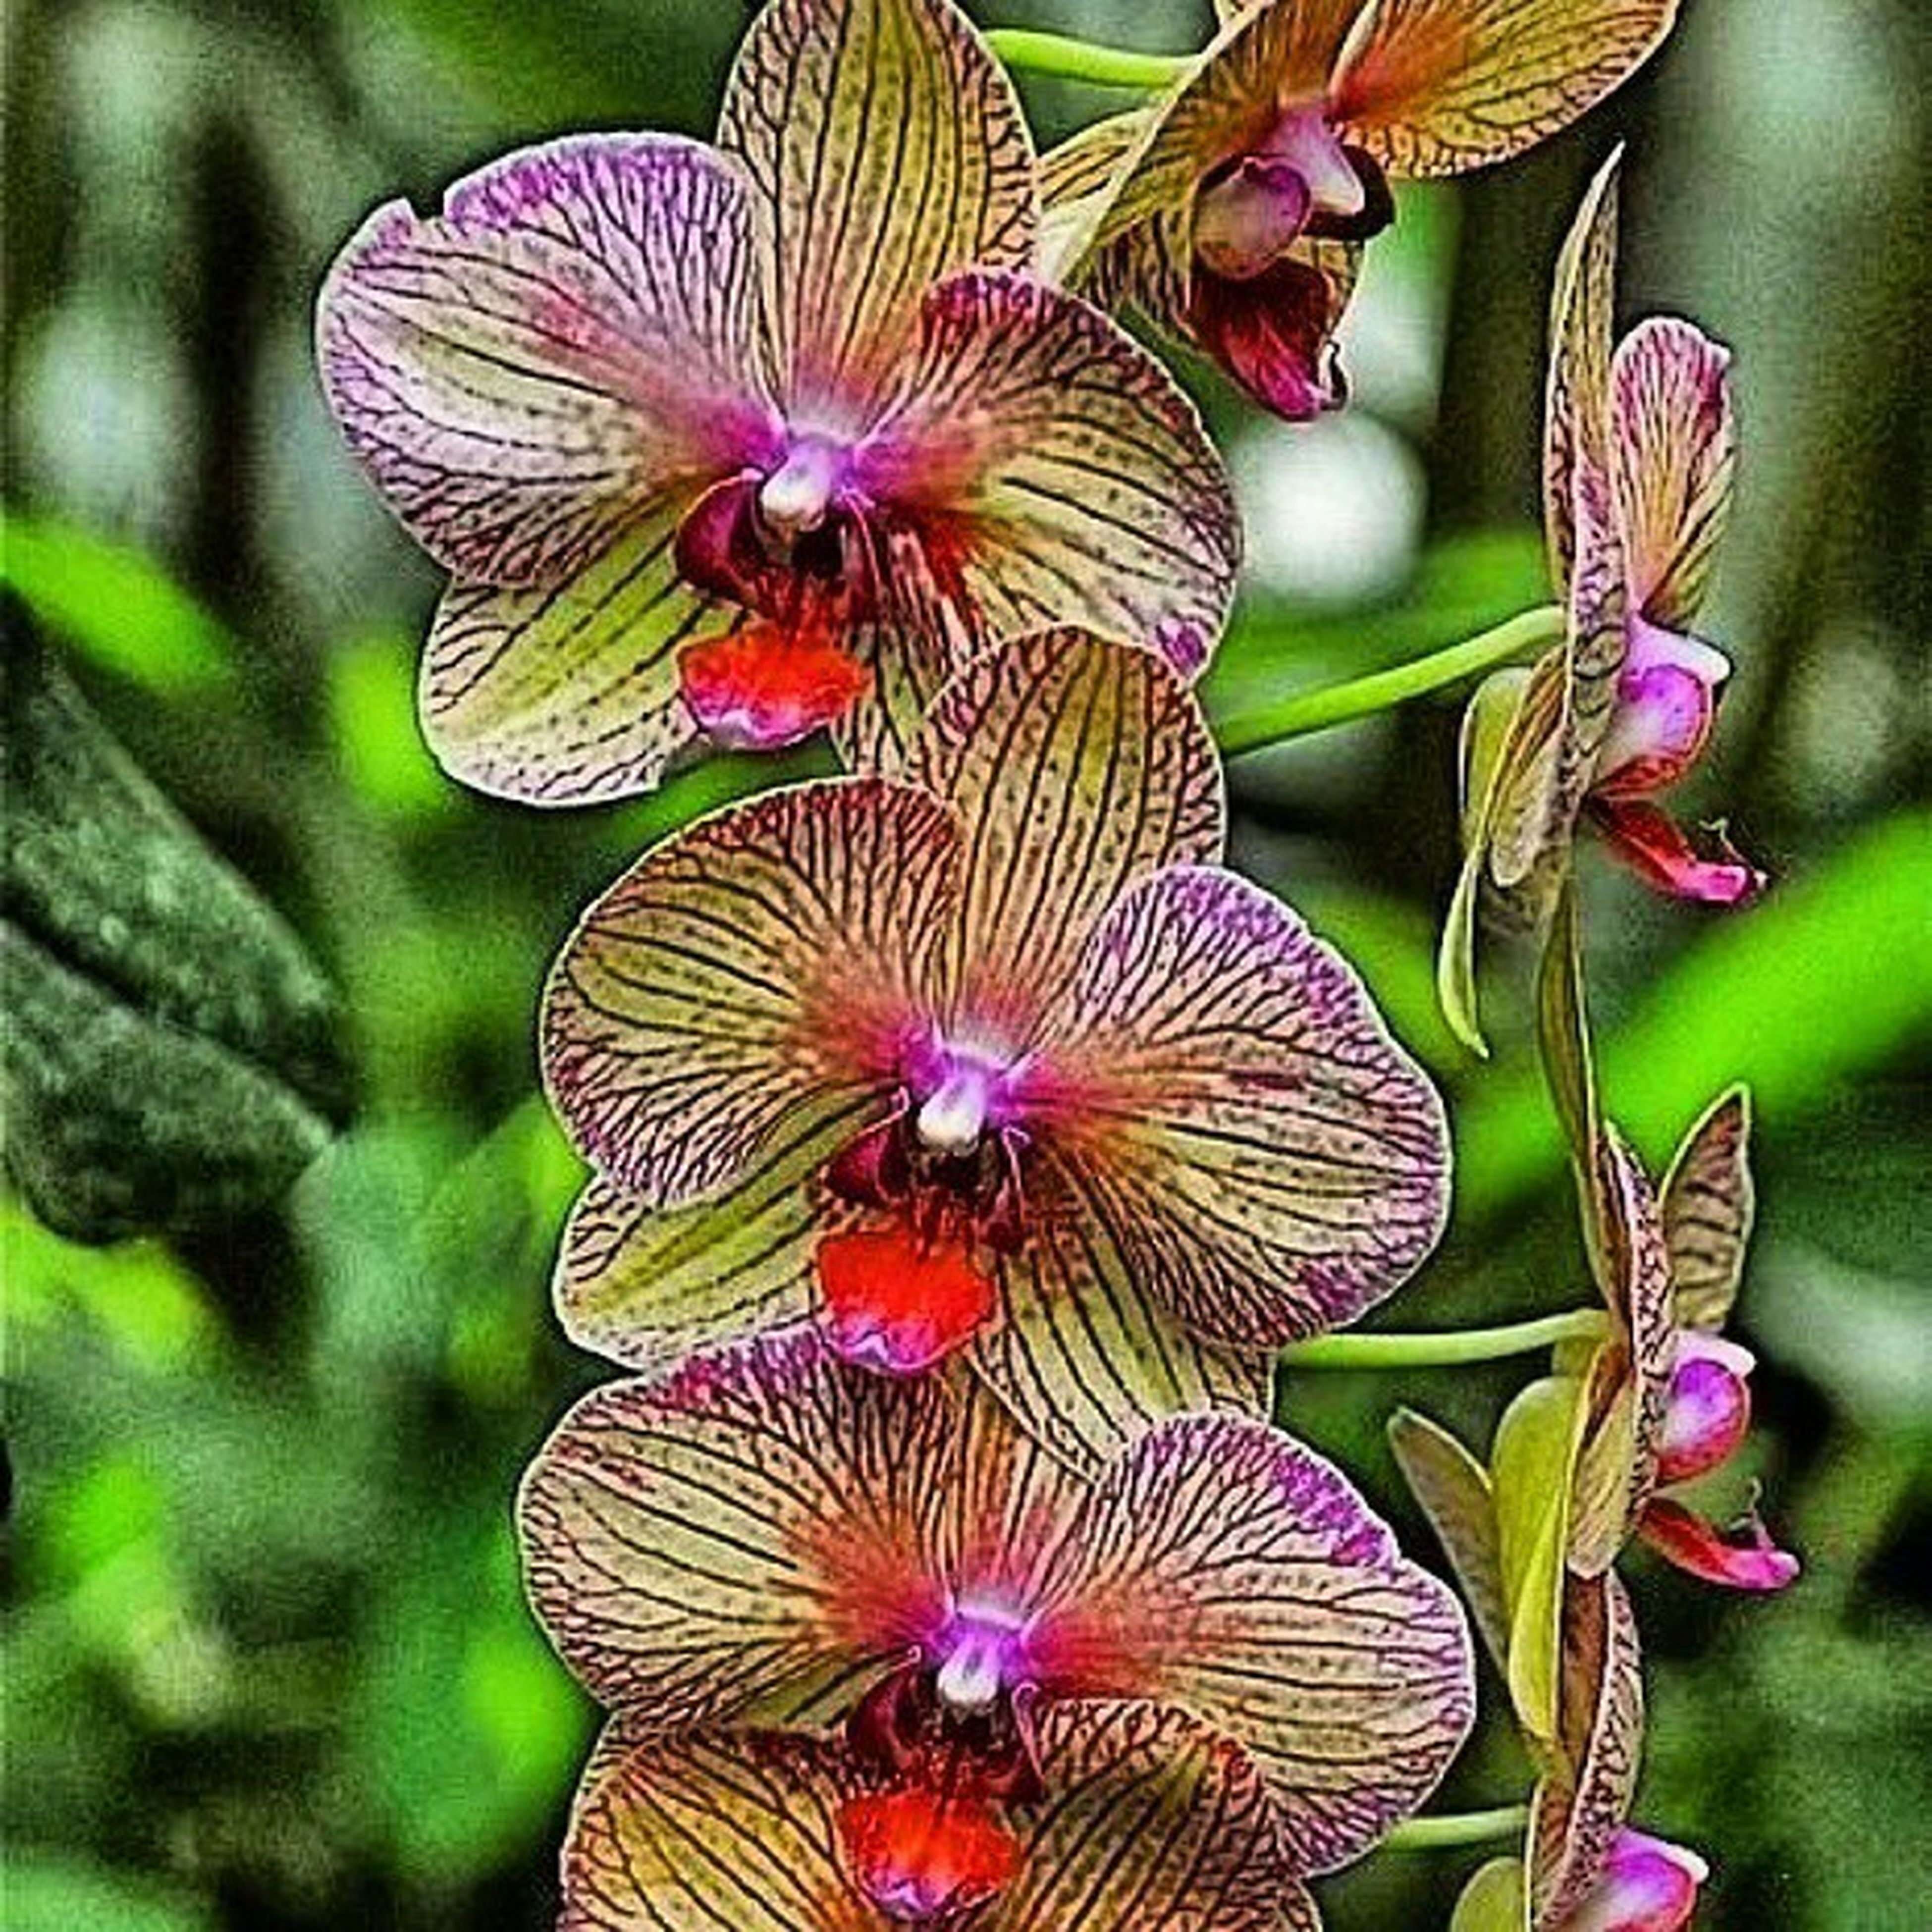 flower, fragility, petal, close-up, freshness, purple, beauty in nature, growth, flower head, plant, nature, focus on foreground, leaf, natural pattern, blooming, no people, in bloom, outdoors, day, orchid